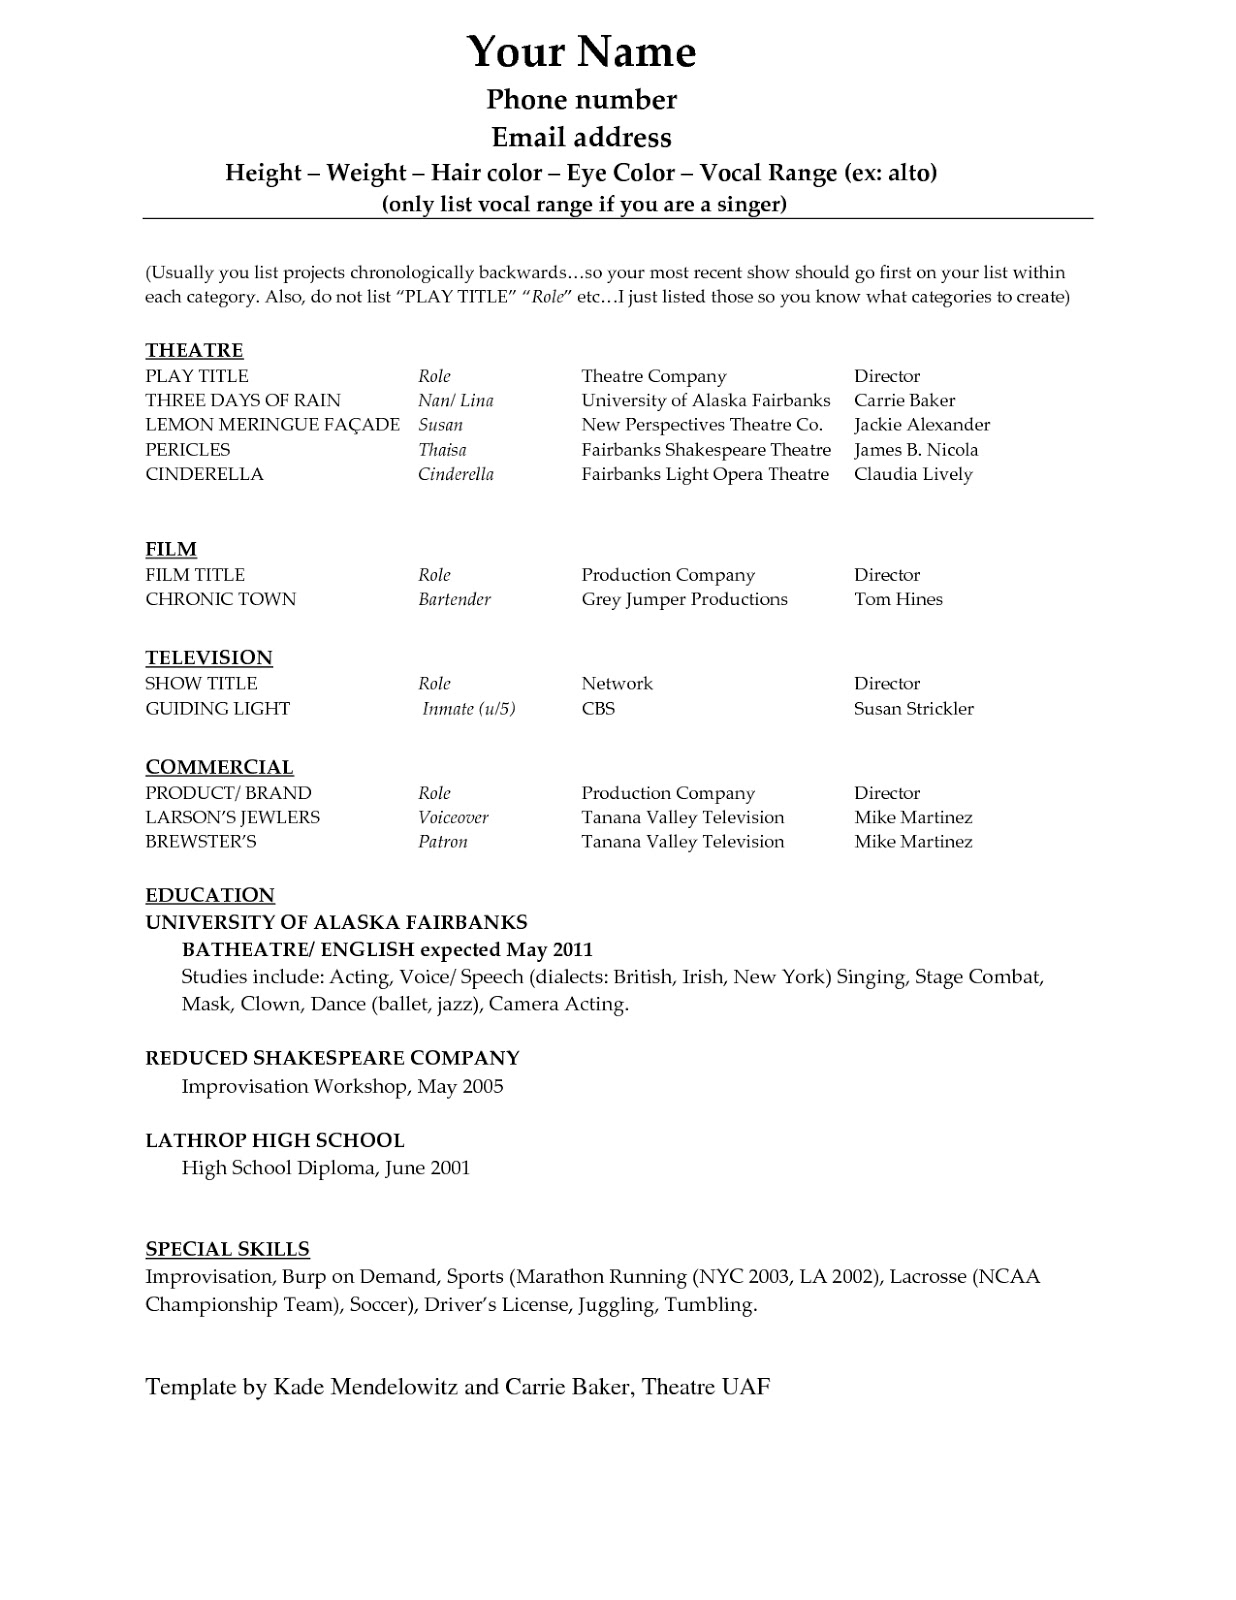 professional and creative resume templates for microsoft word - Free Creative Resume Templates Word